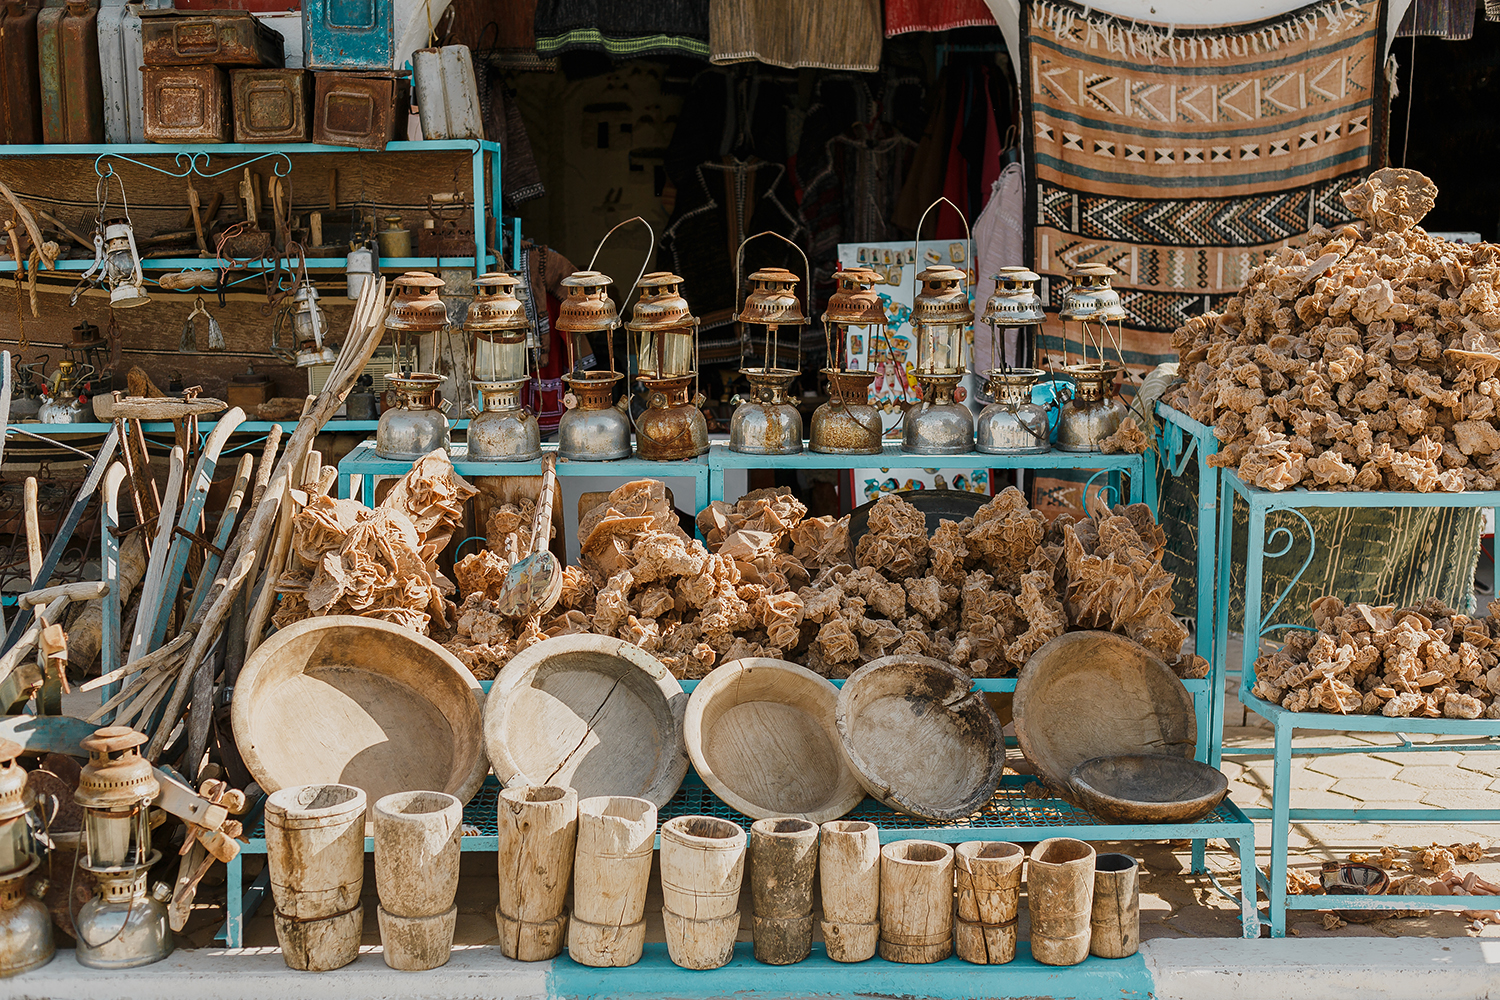 SN2_0483-sophie-narses-photographe-Tunisie-Voyage-book-shooting-geneve-mariage-suisse-famille-animaux-tirages-art-cours-photo-paysages-desert